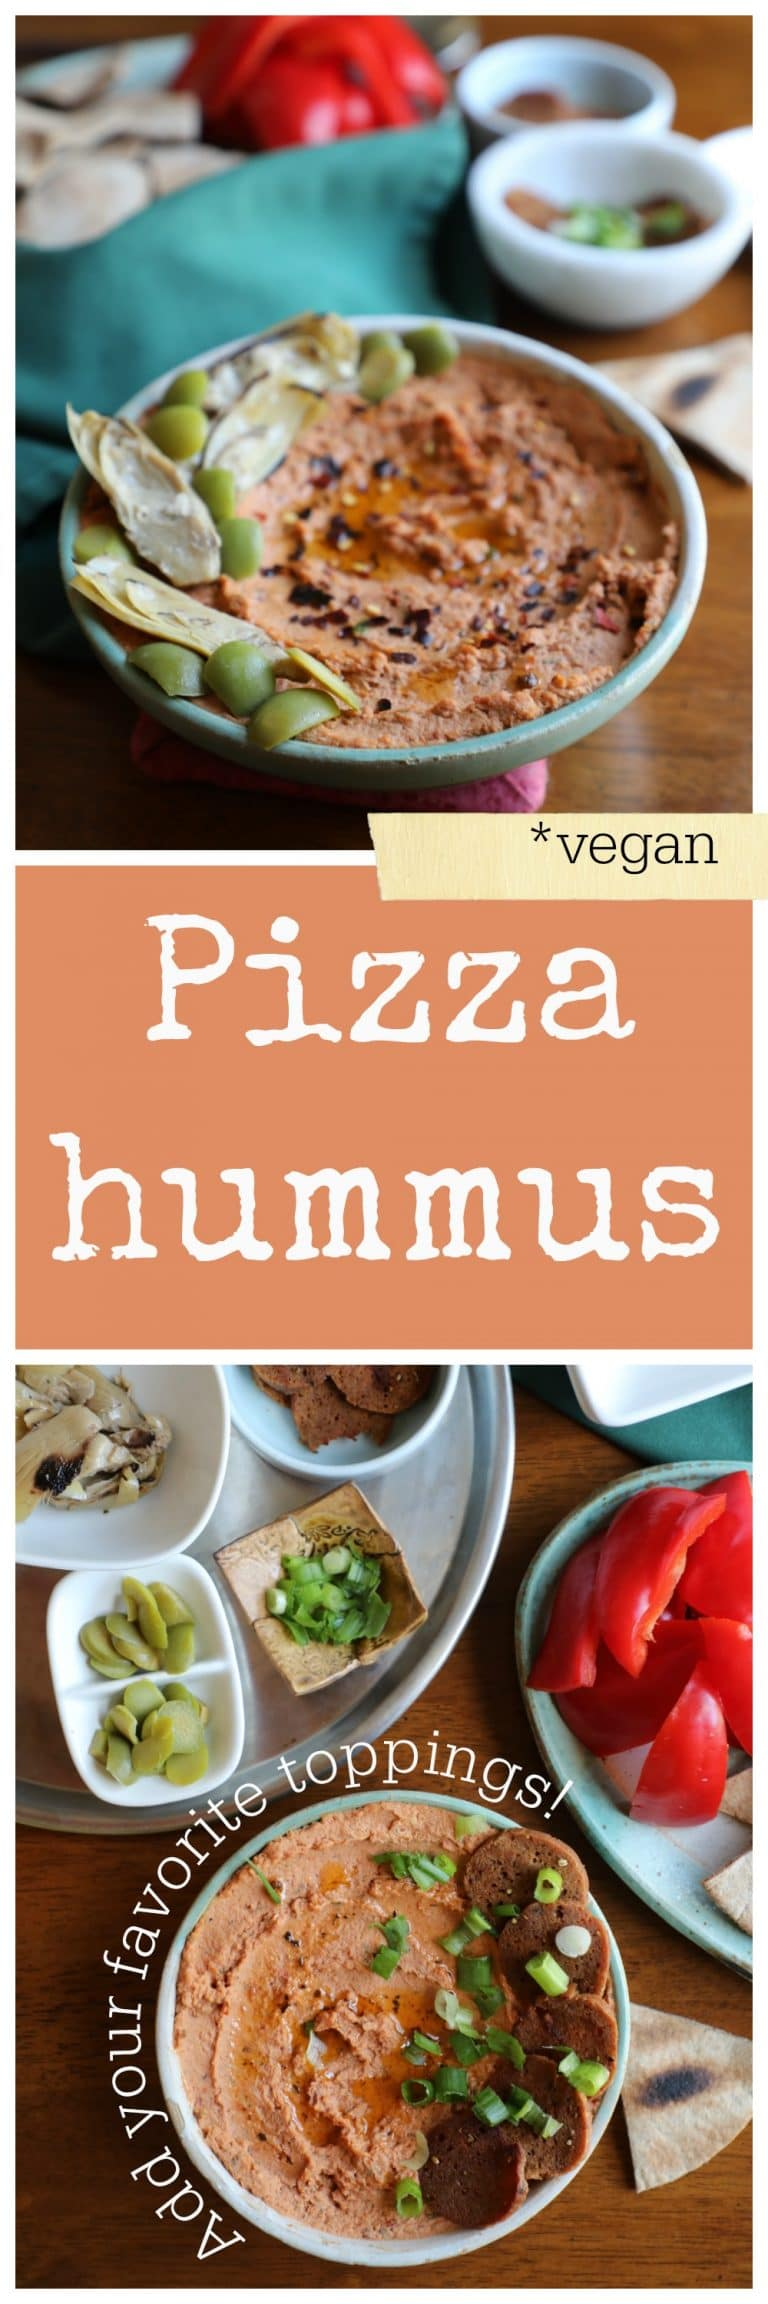 Pizza hummus made with sun-dried tomatoes. Simply add your favorite toppings, like seitan pepperoni or artichoke hearts! Vegan & gluten-free optional appetizer | cadryskitchen.com